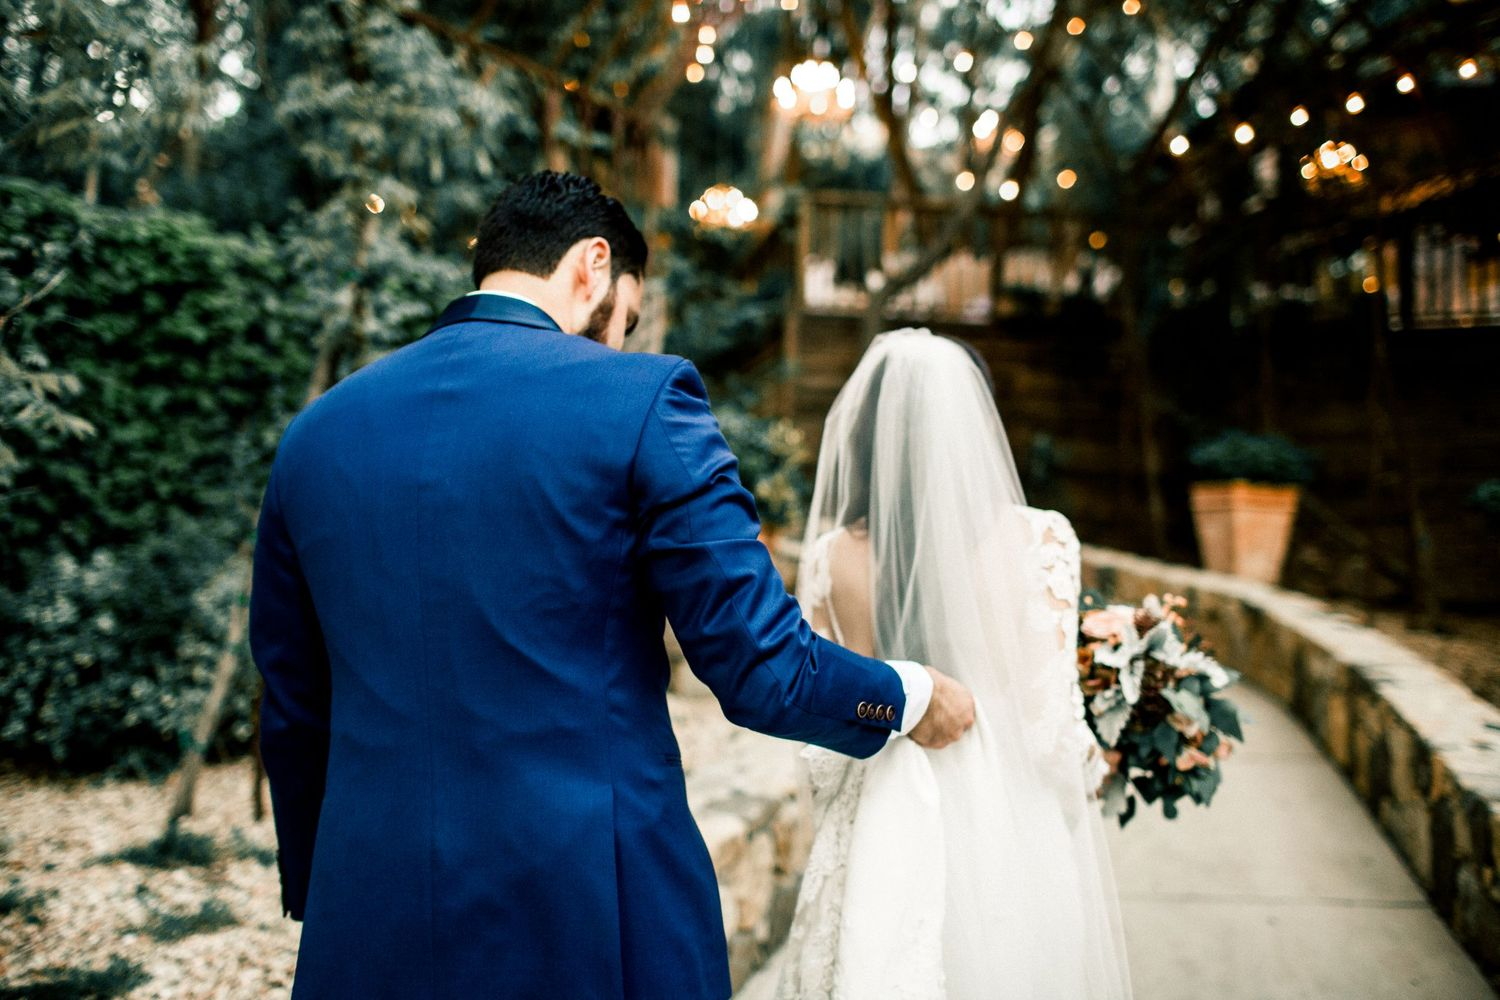 groom helping bride with dress and veil